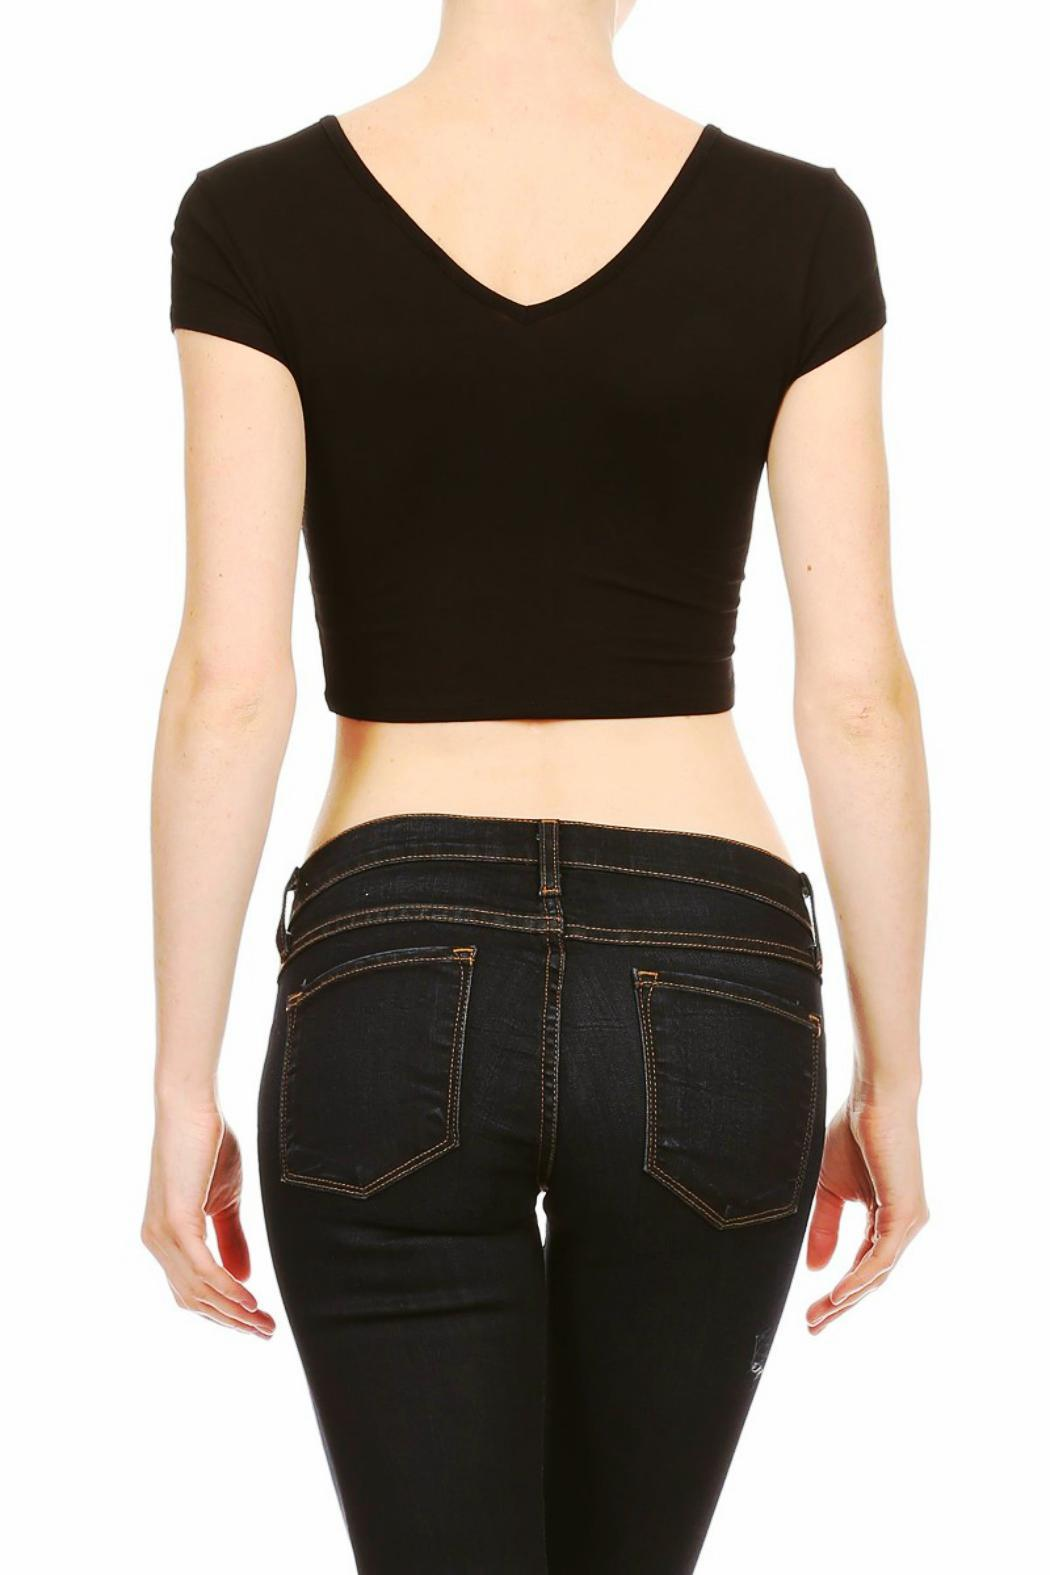 BRANDED Lace-Up Crop Top - Front Full Image